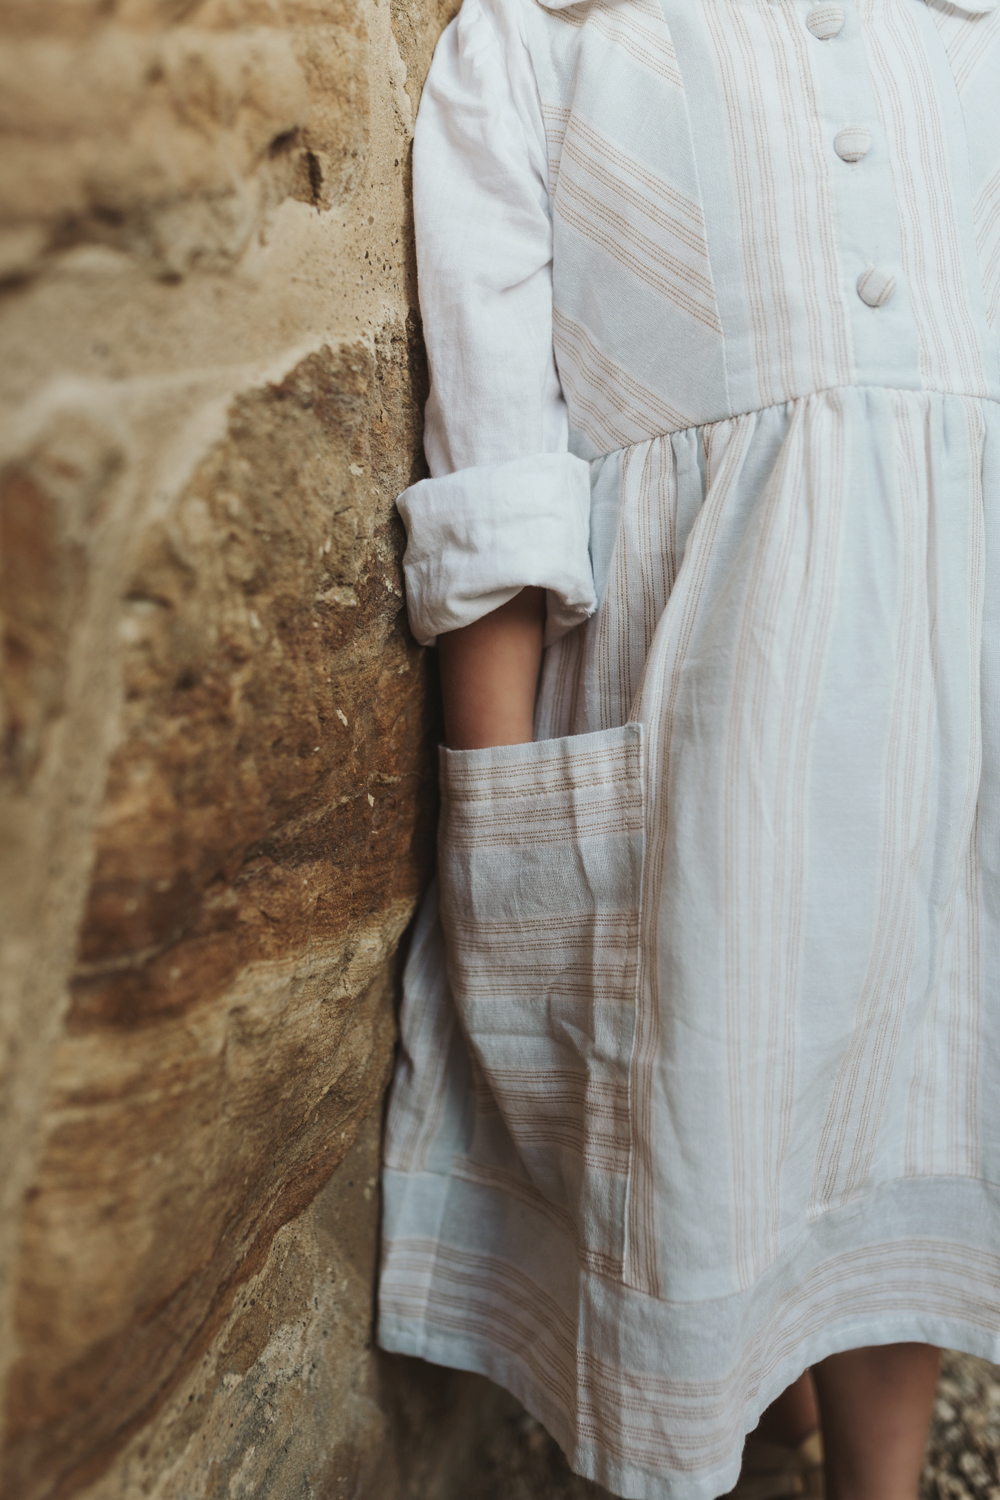 Detail shot of cotton dress pocket next to sandstone wall by Sii